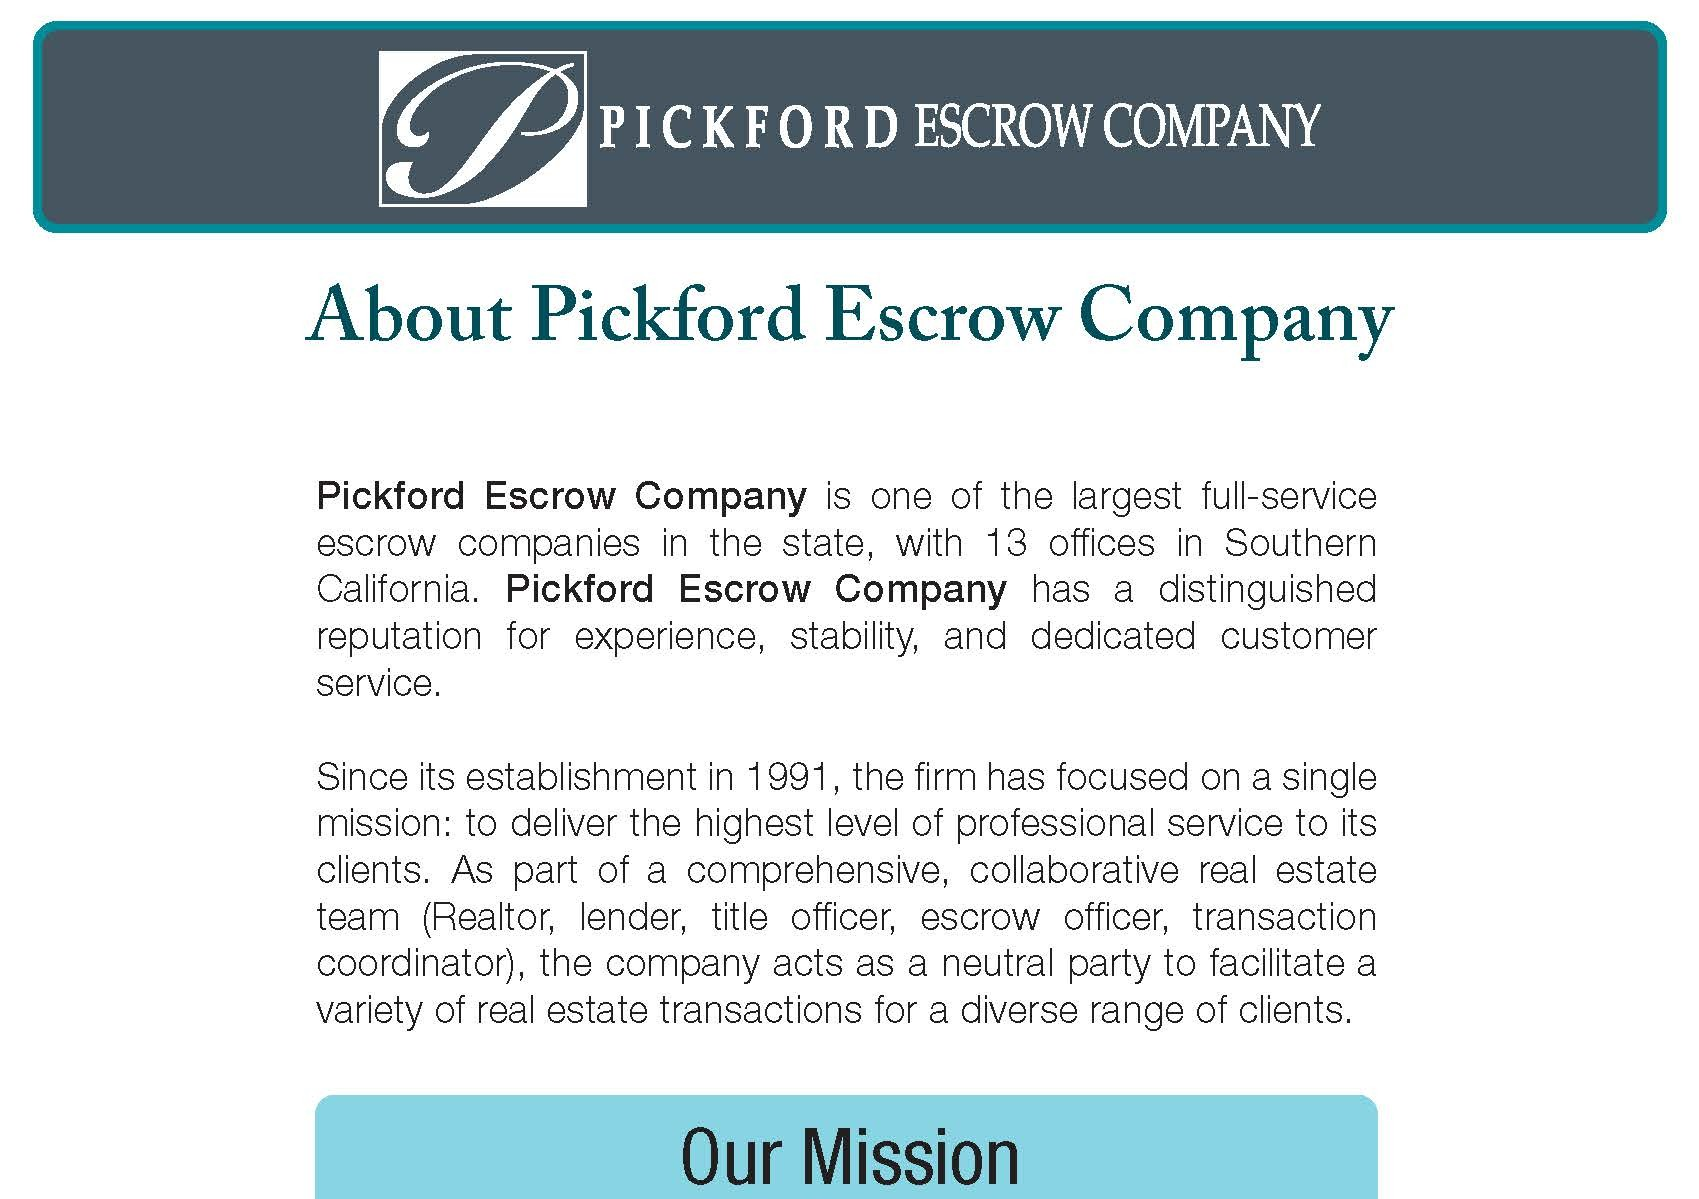 About Pickford Escrow Company